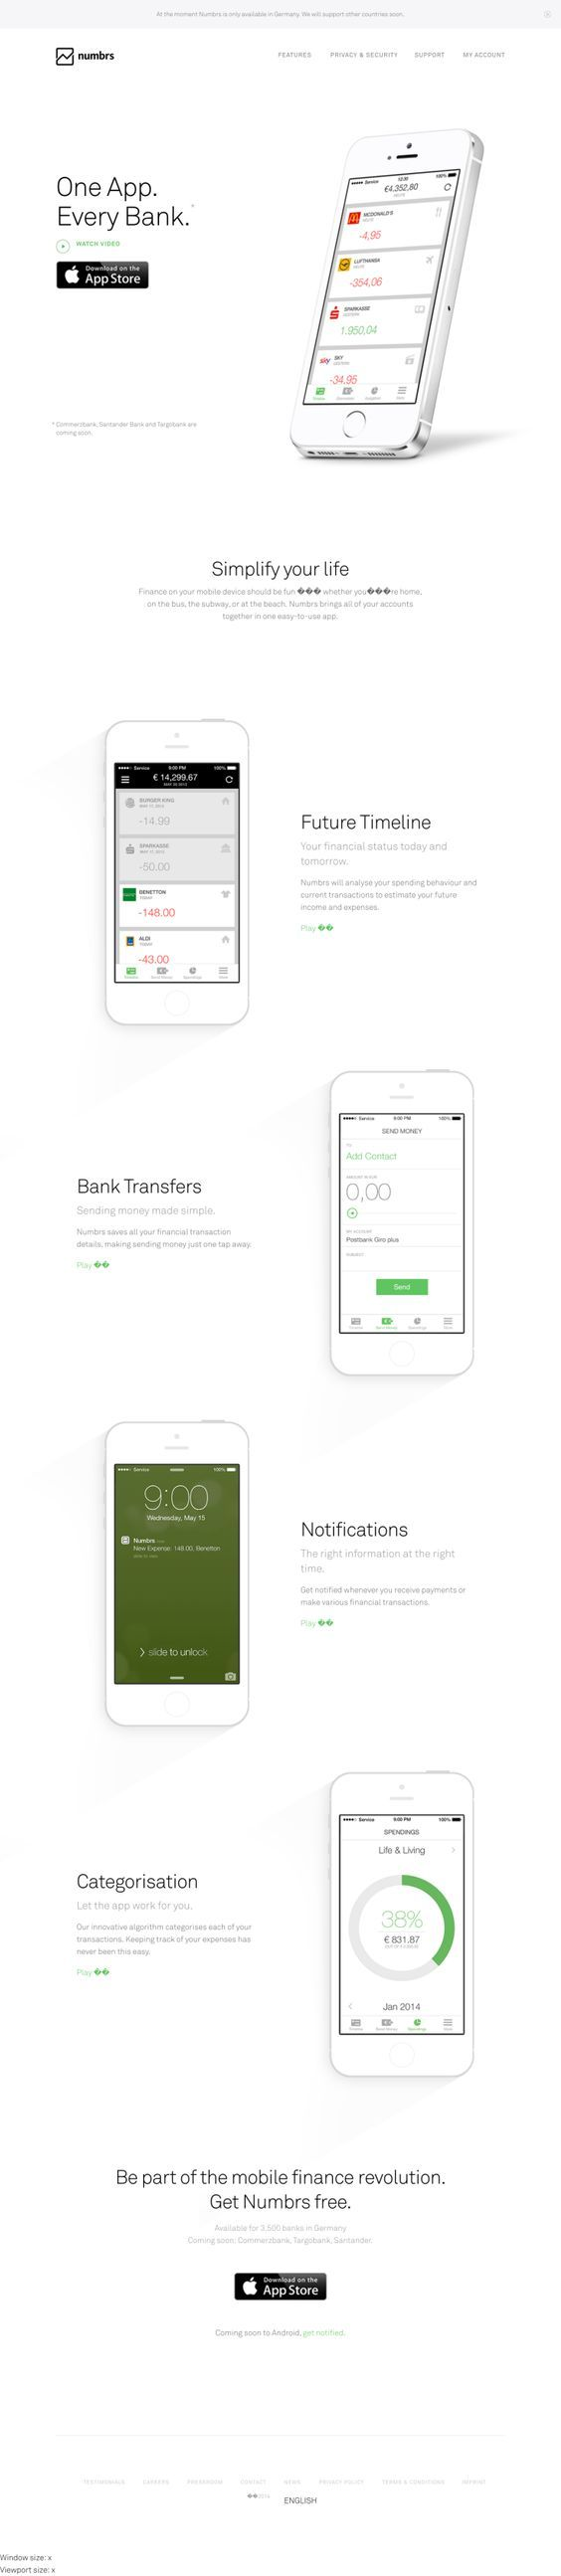 mobile banking app: